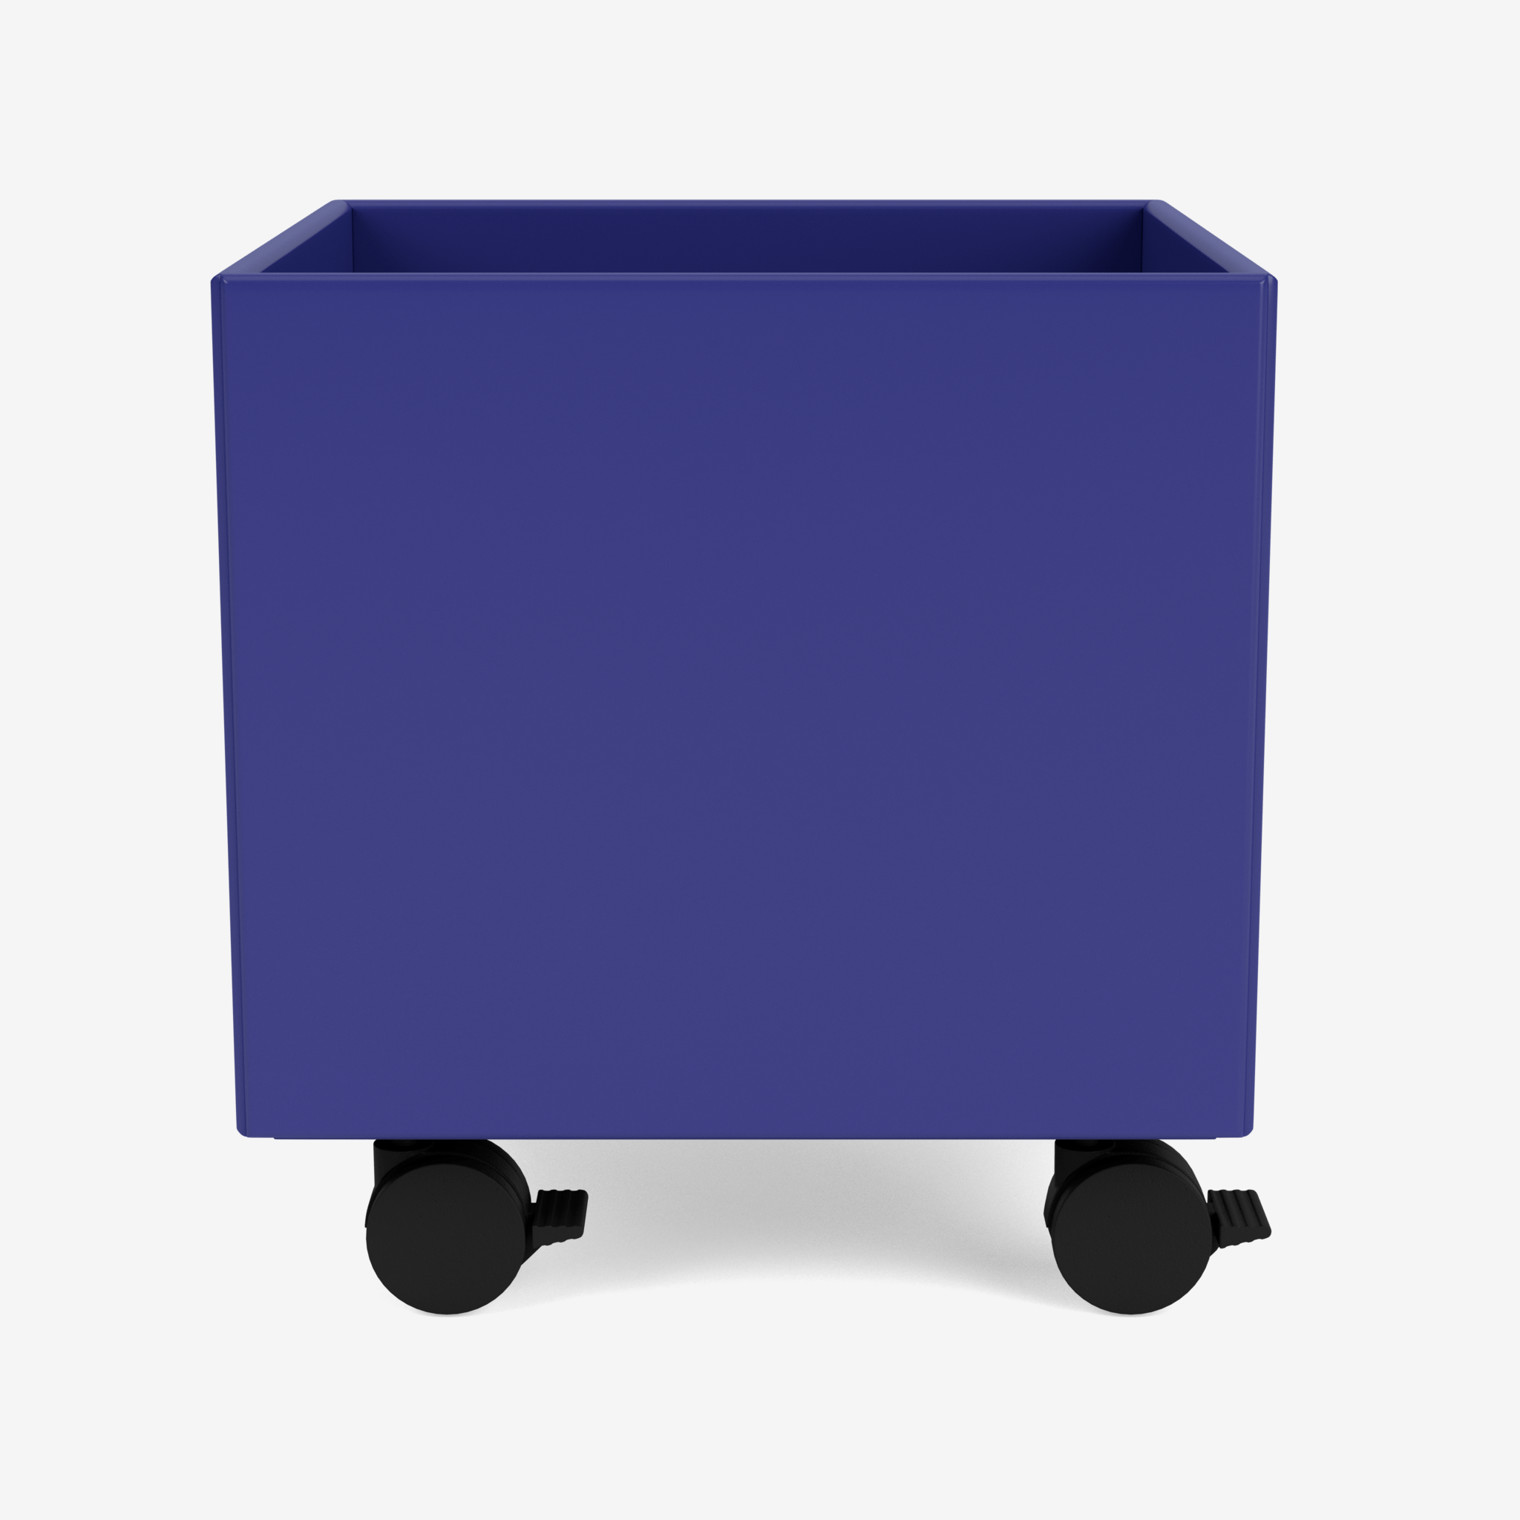 PLAY storage box